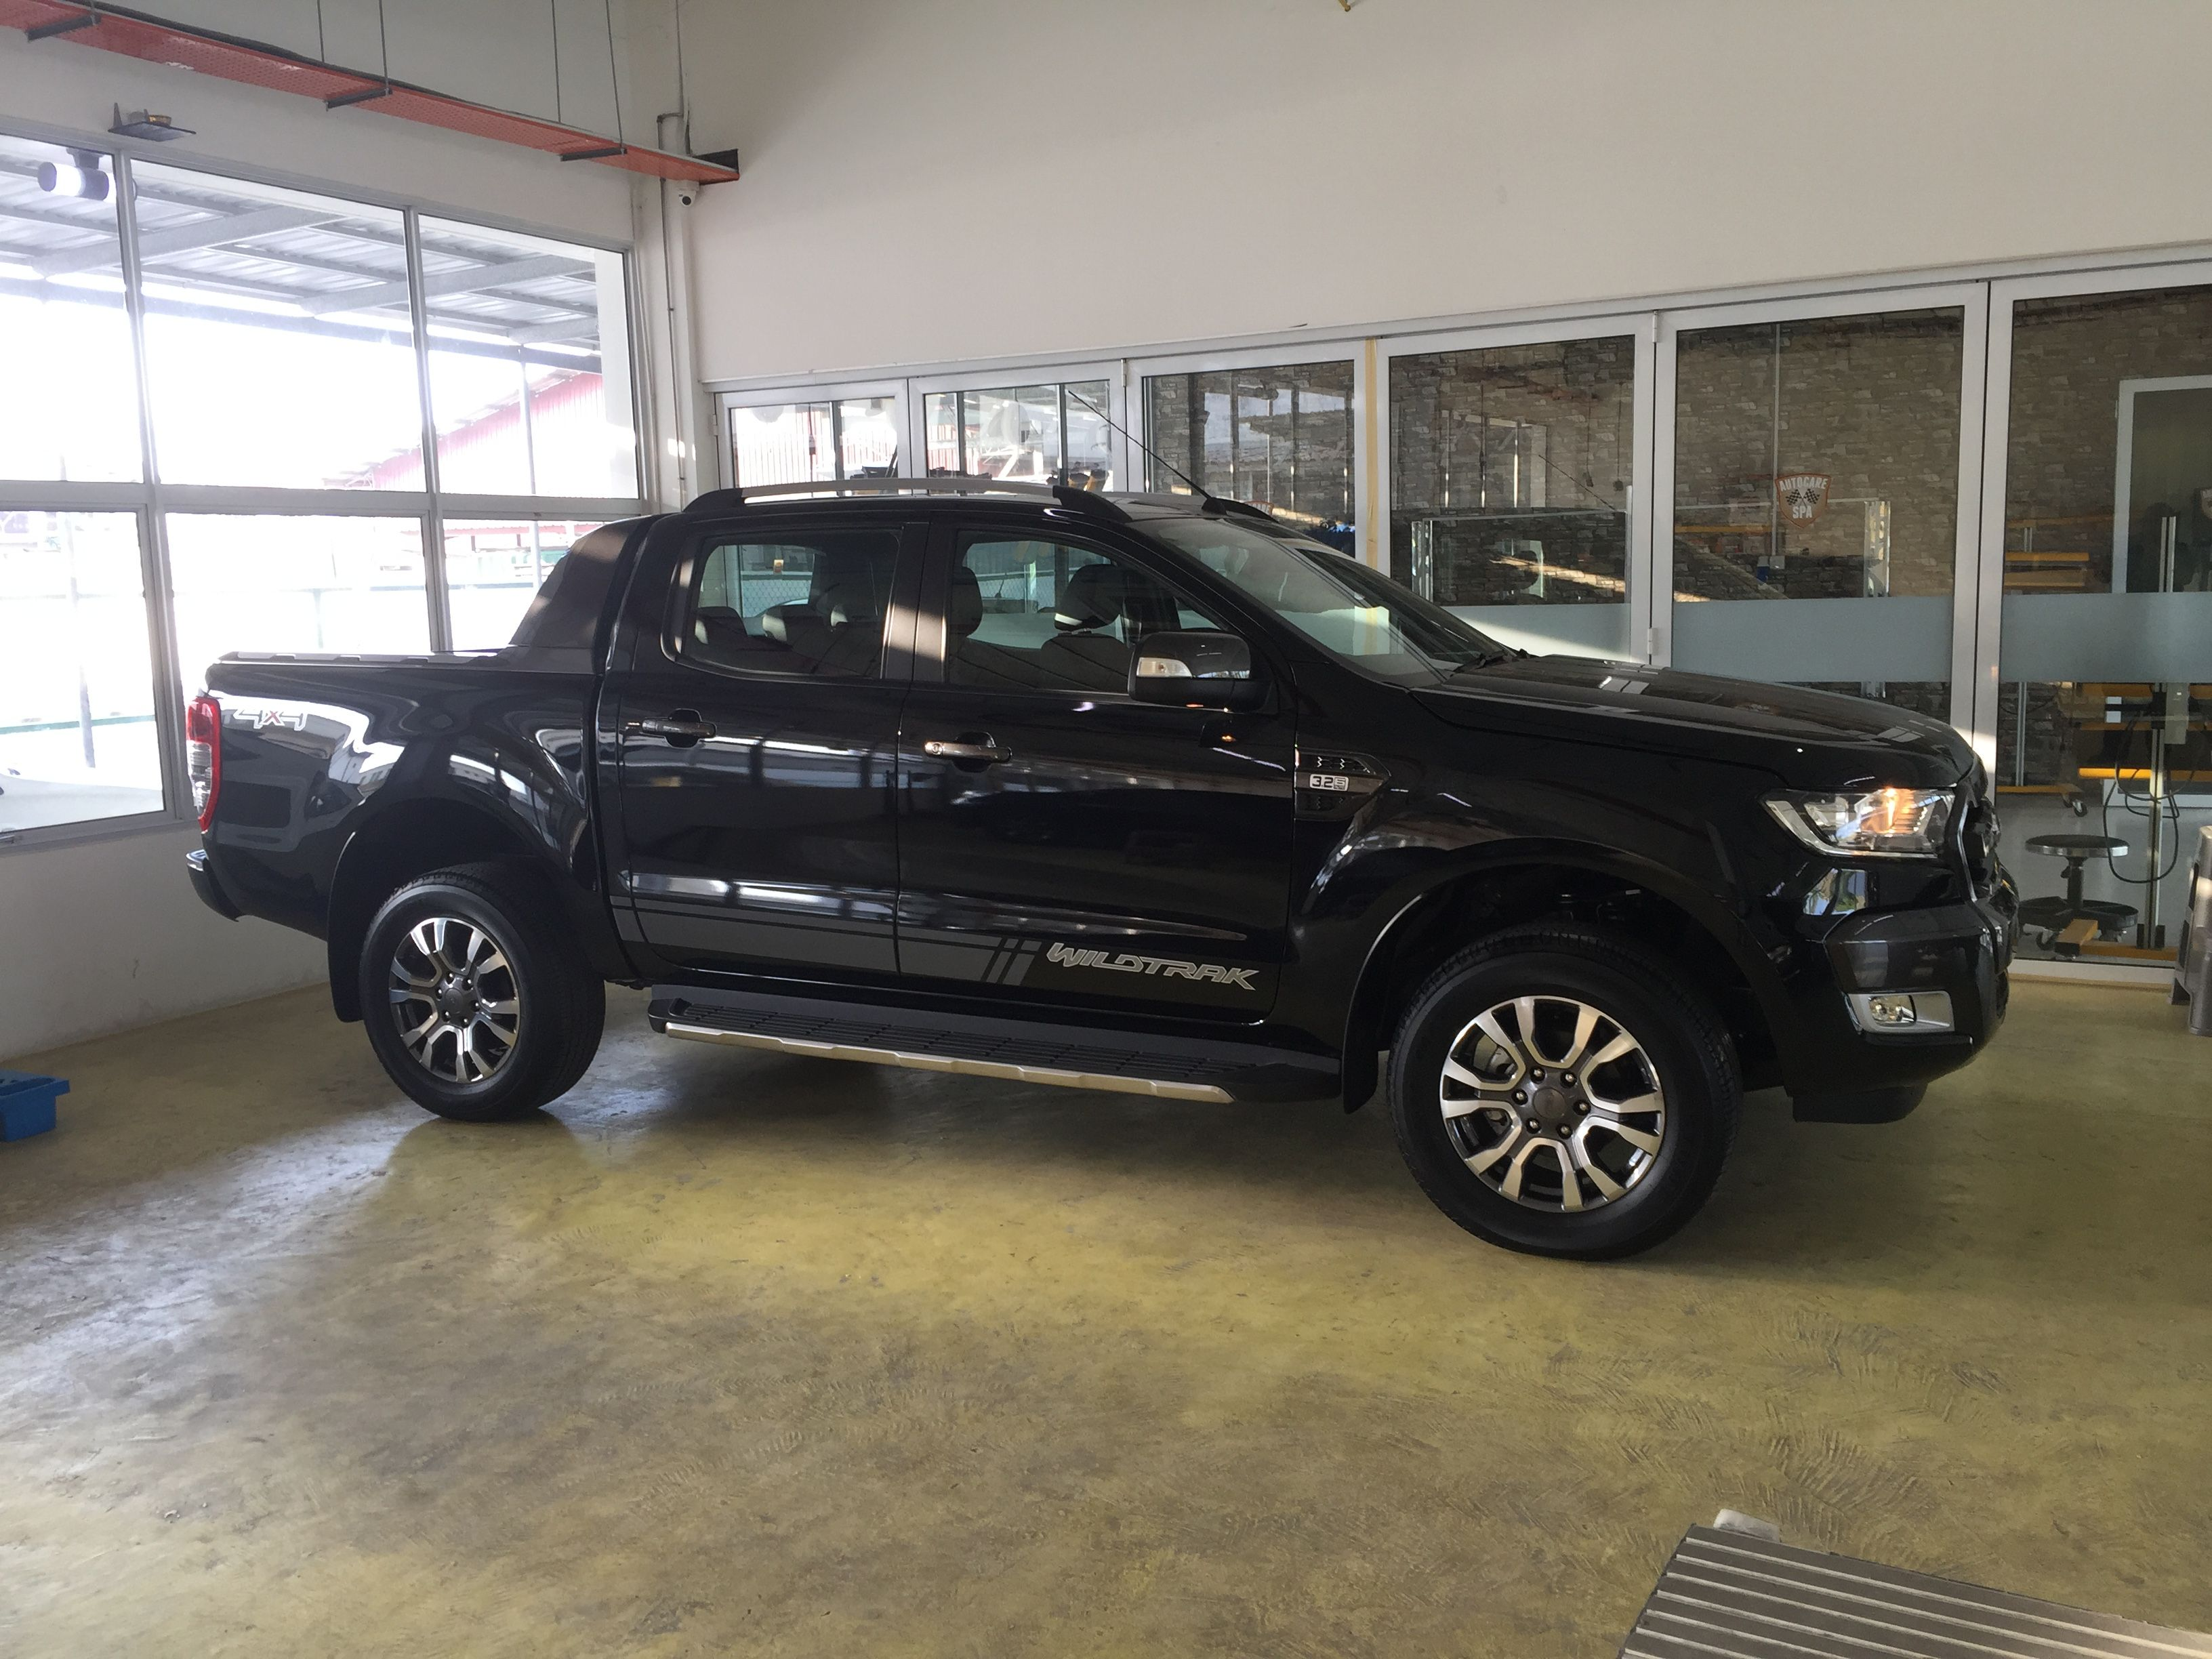 Ford Ranger Wildtrak Limited Edition Jet Black Ford Ranger